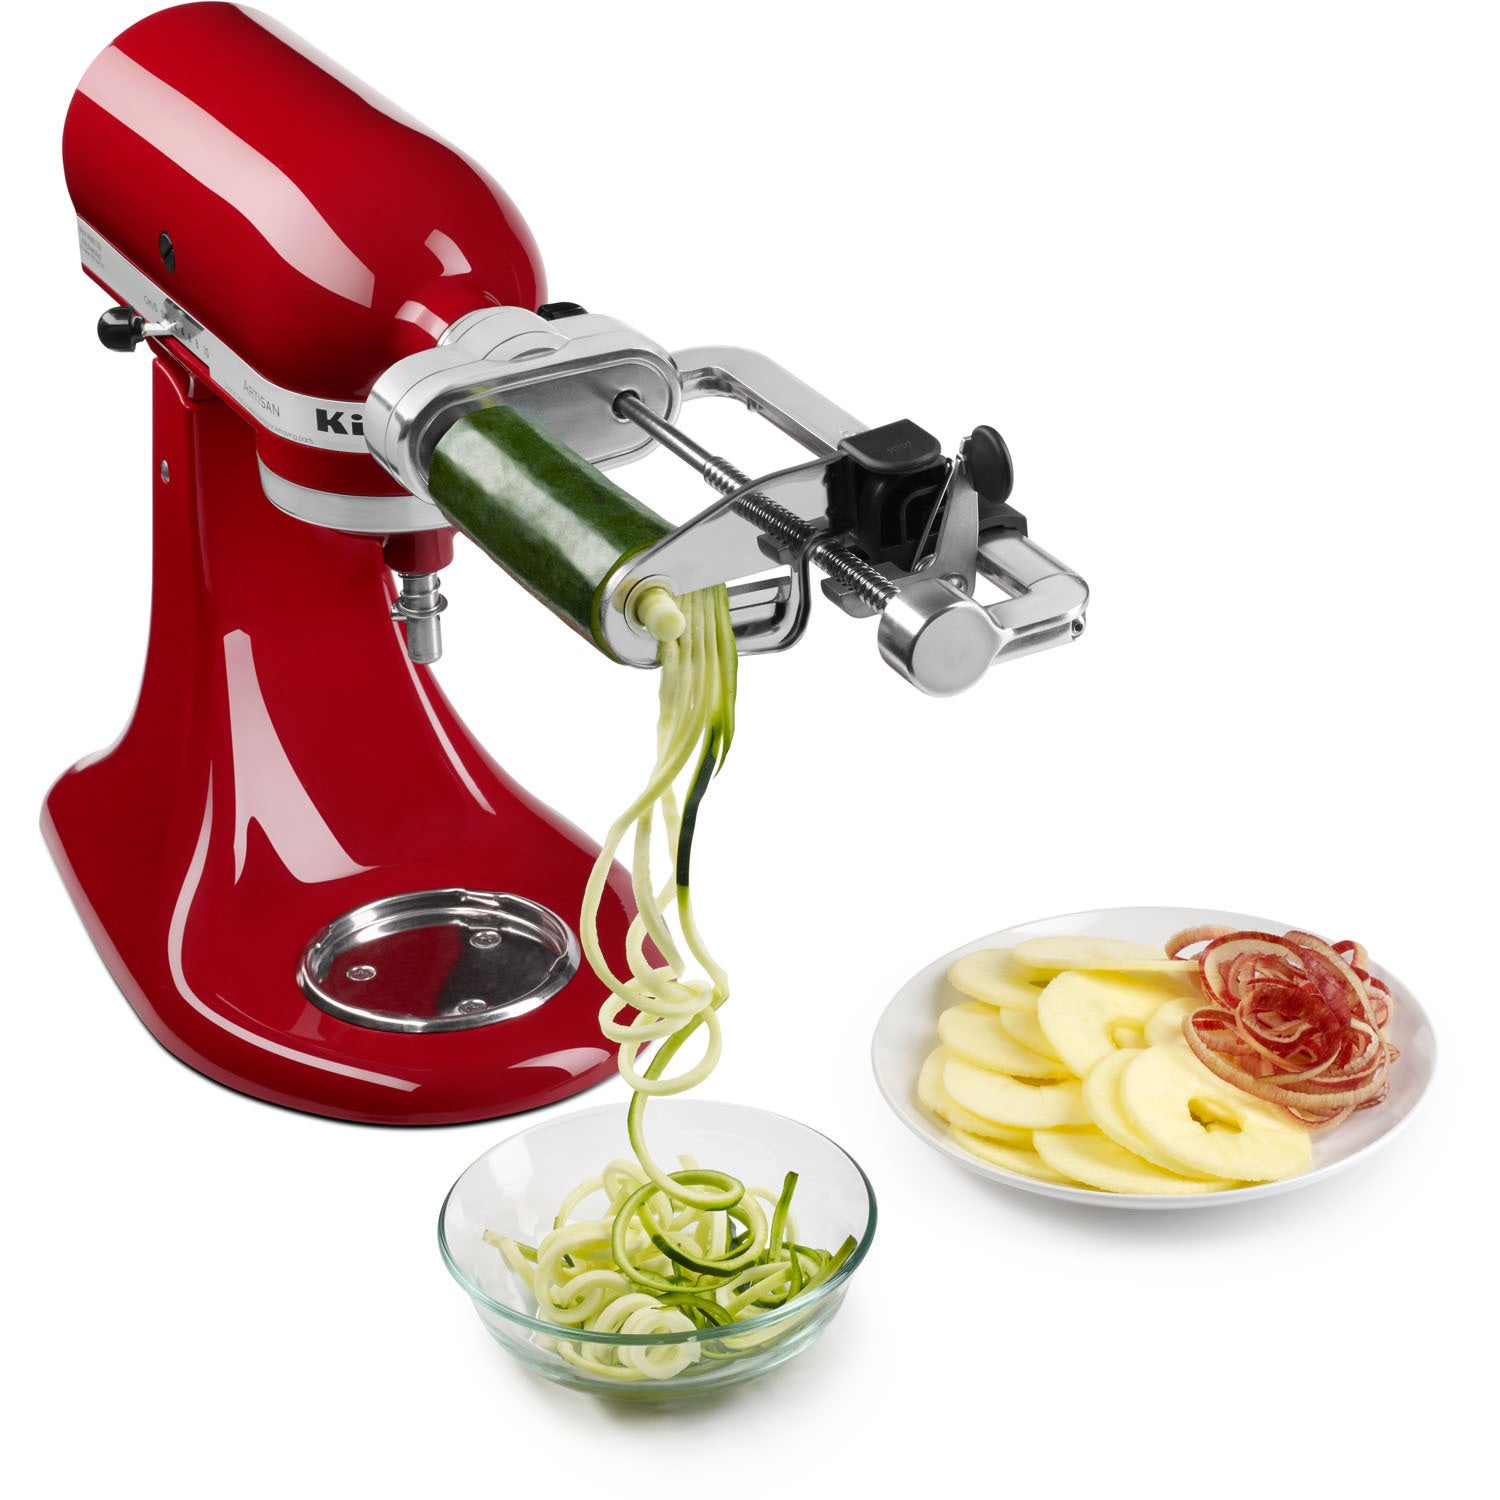 awesome nsyd style pasta attachments and kitchen roller aid mixer for s recipes trend kitchenaid picture